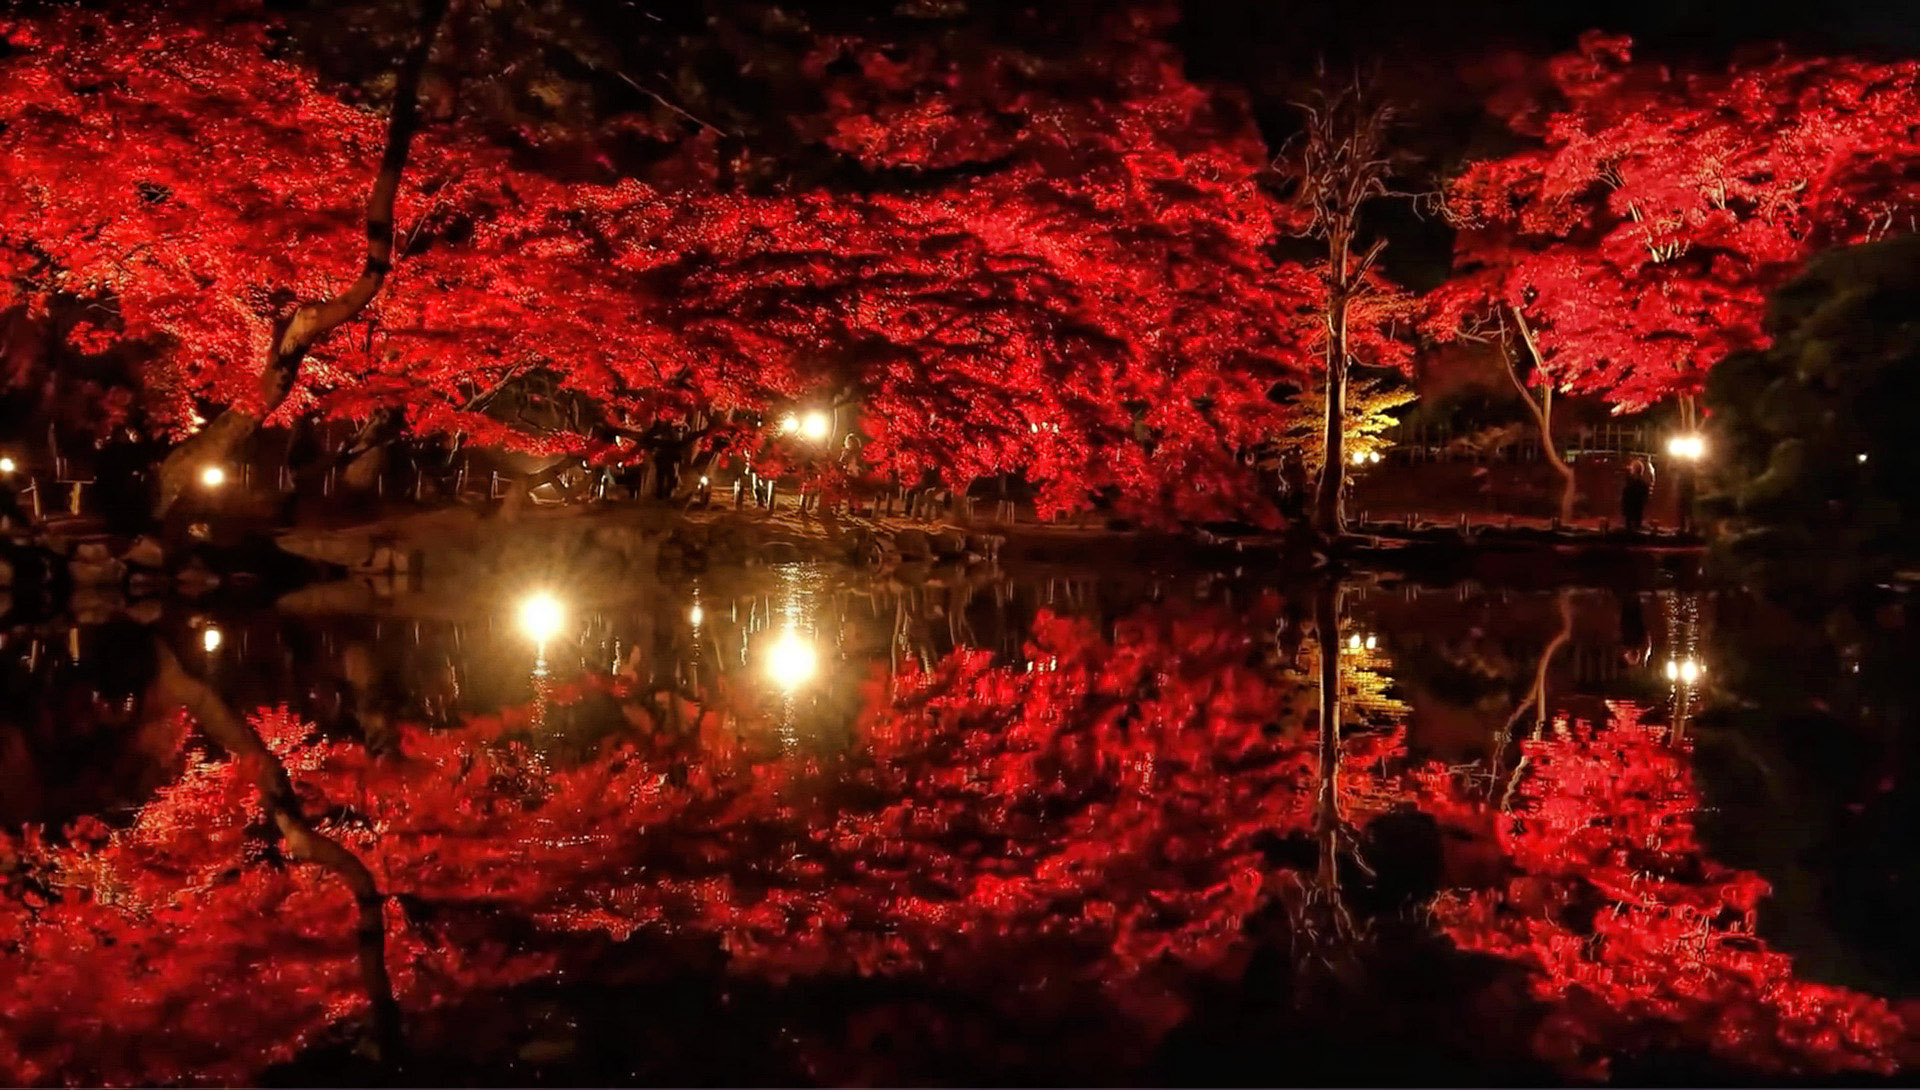 Red Trees Lights And Reflection In Garden Image Free